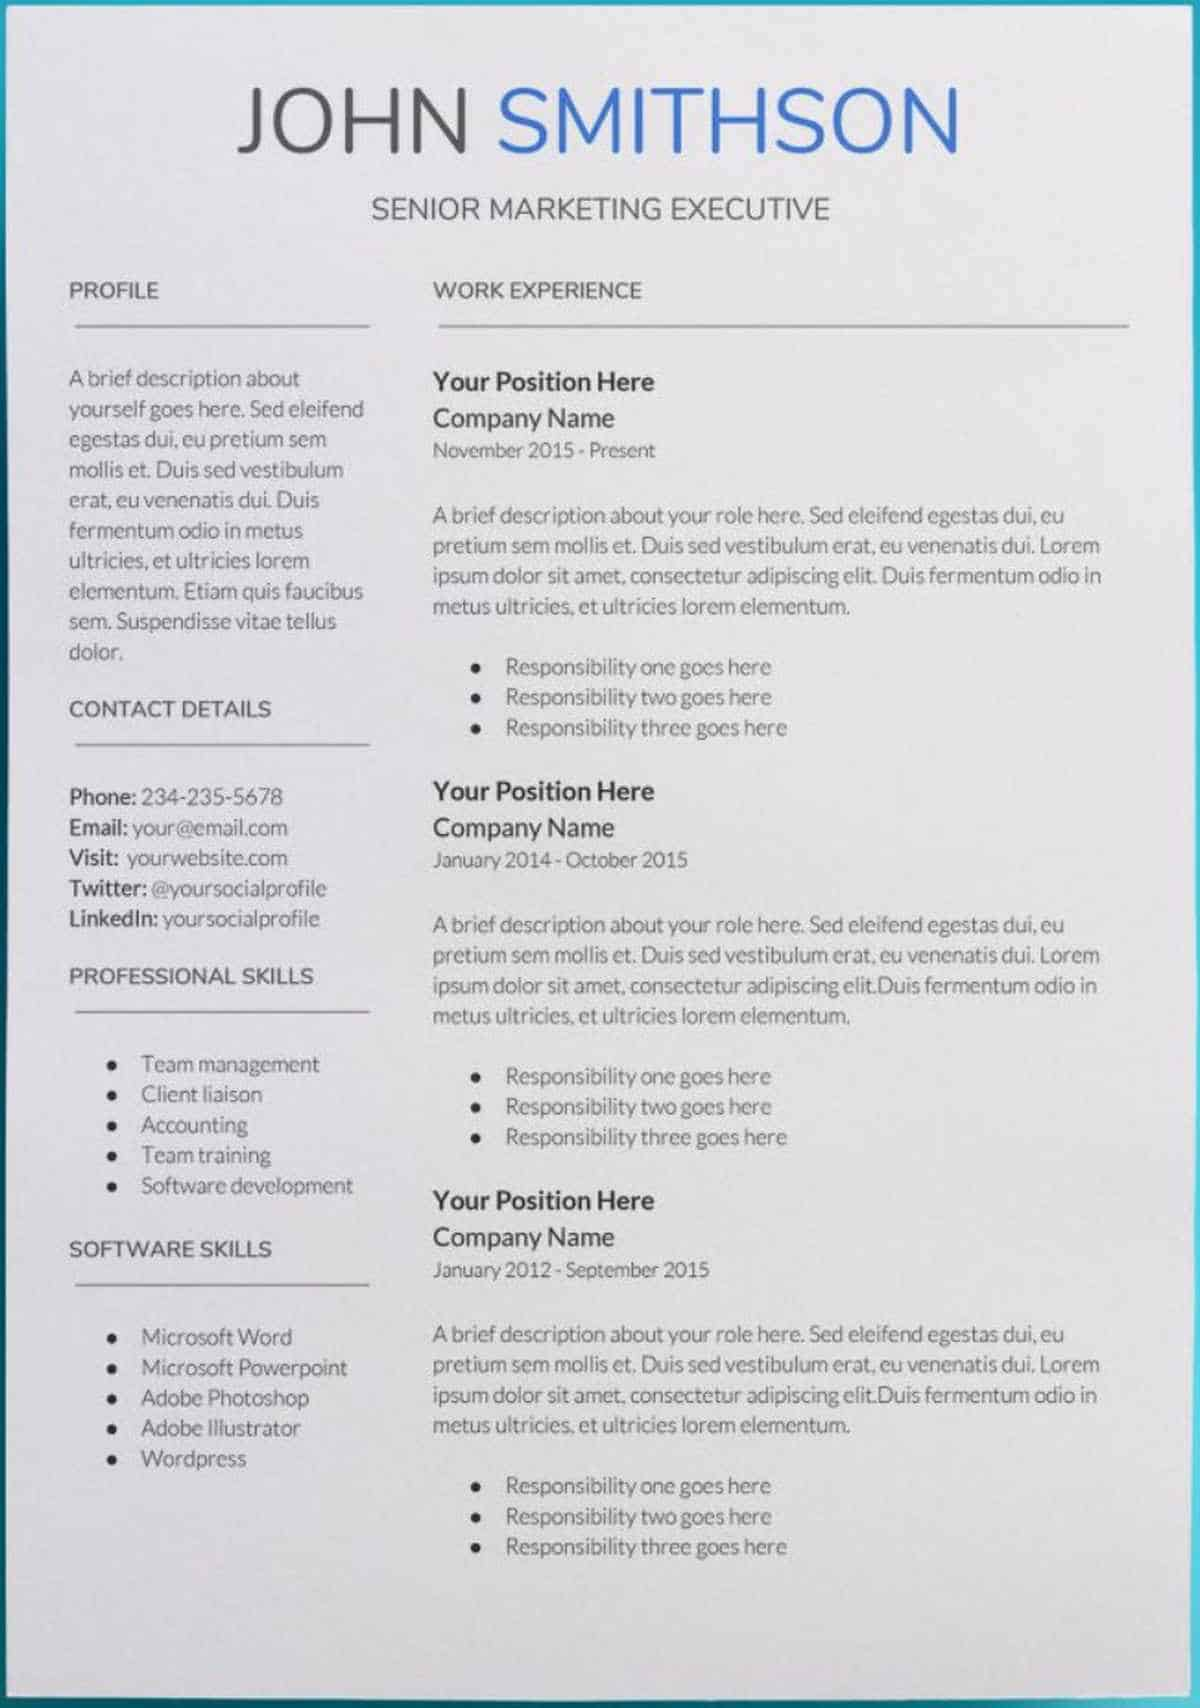 google docs resume templates downloadable pdfs work template saturn free customer service Resume Work Resume Template Google Docs